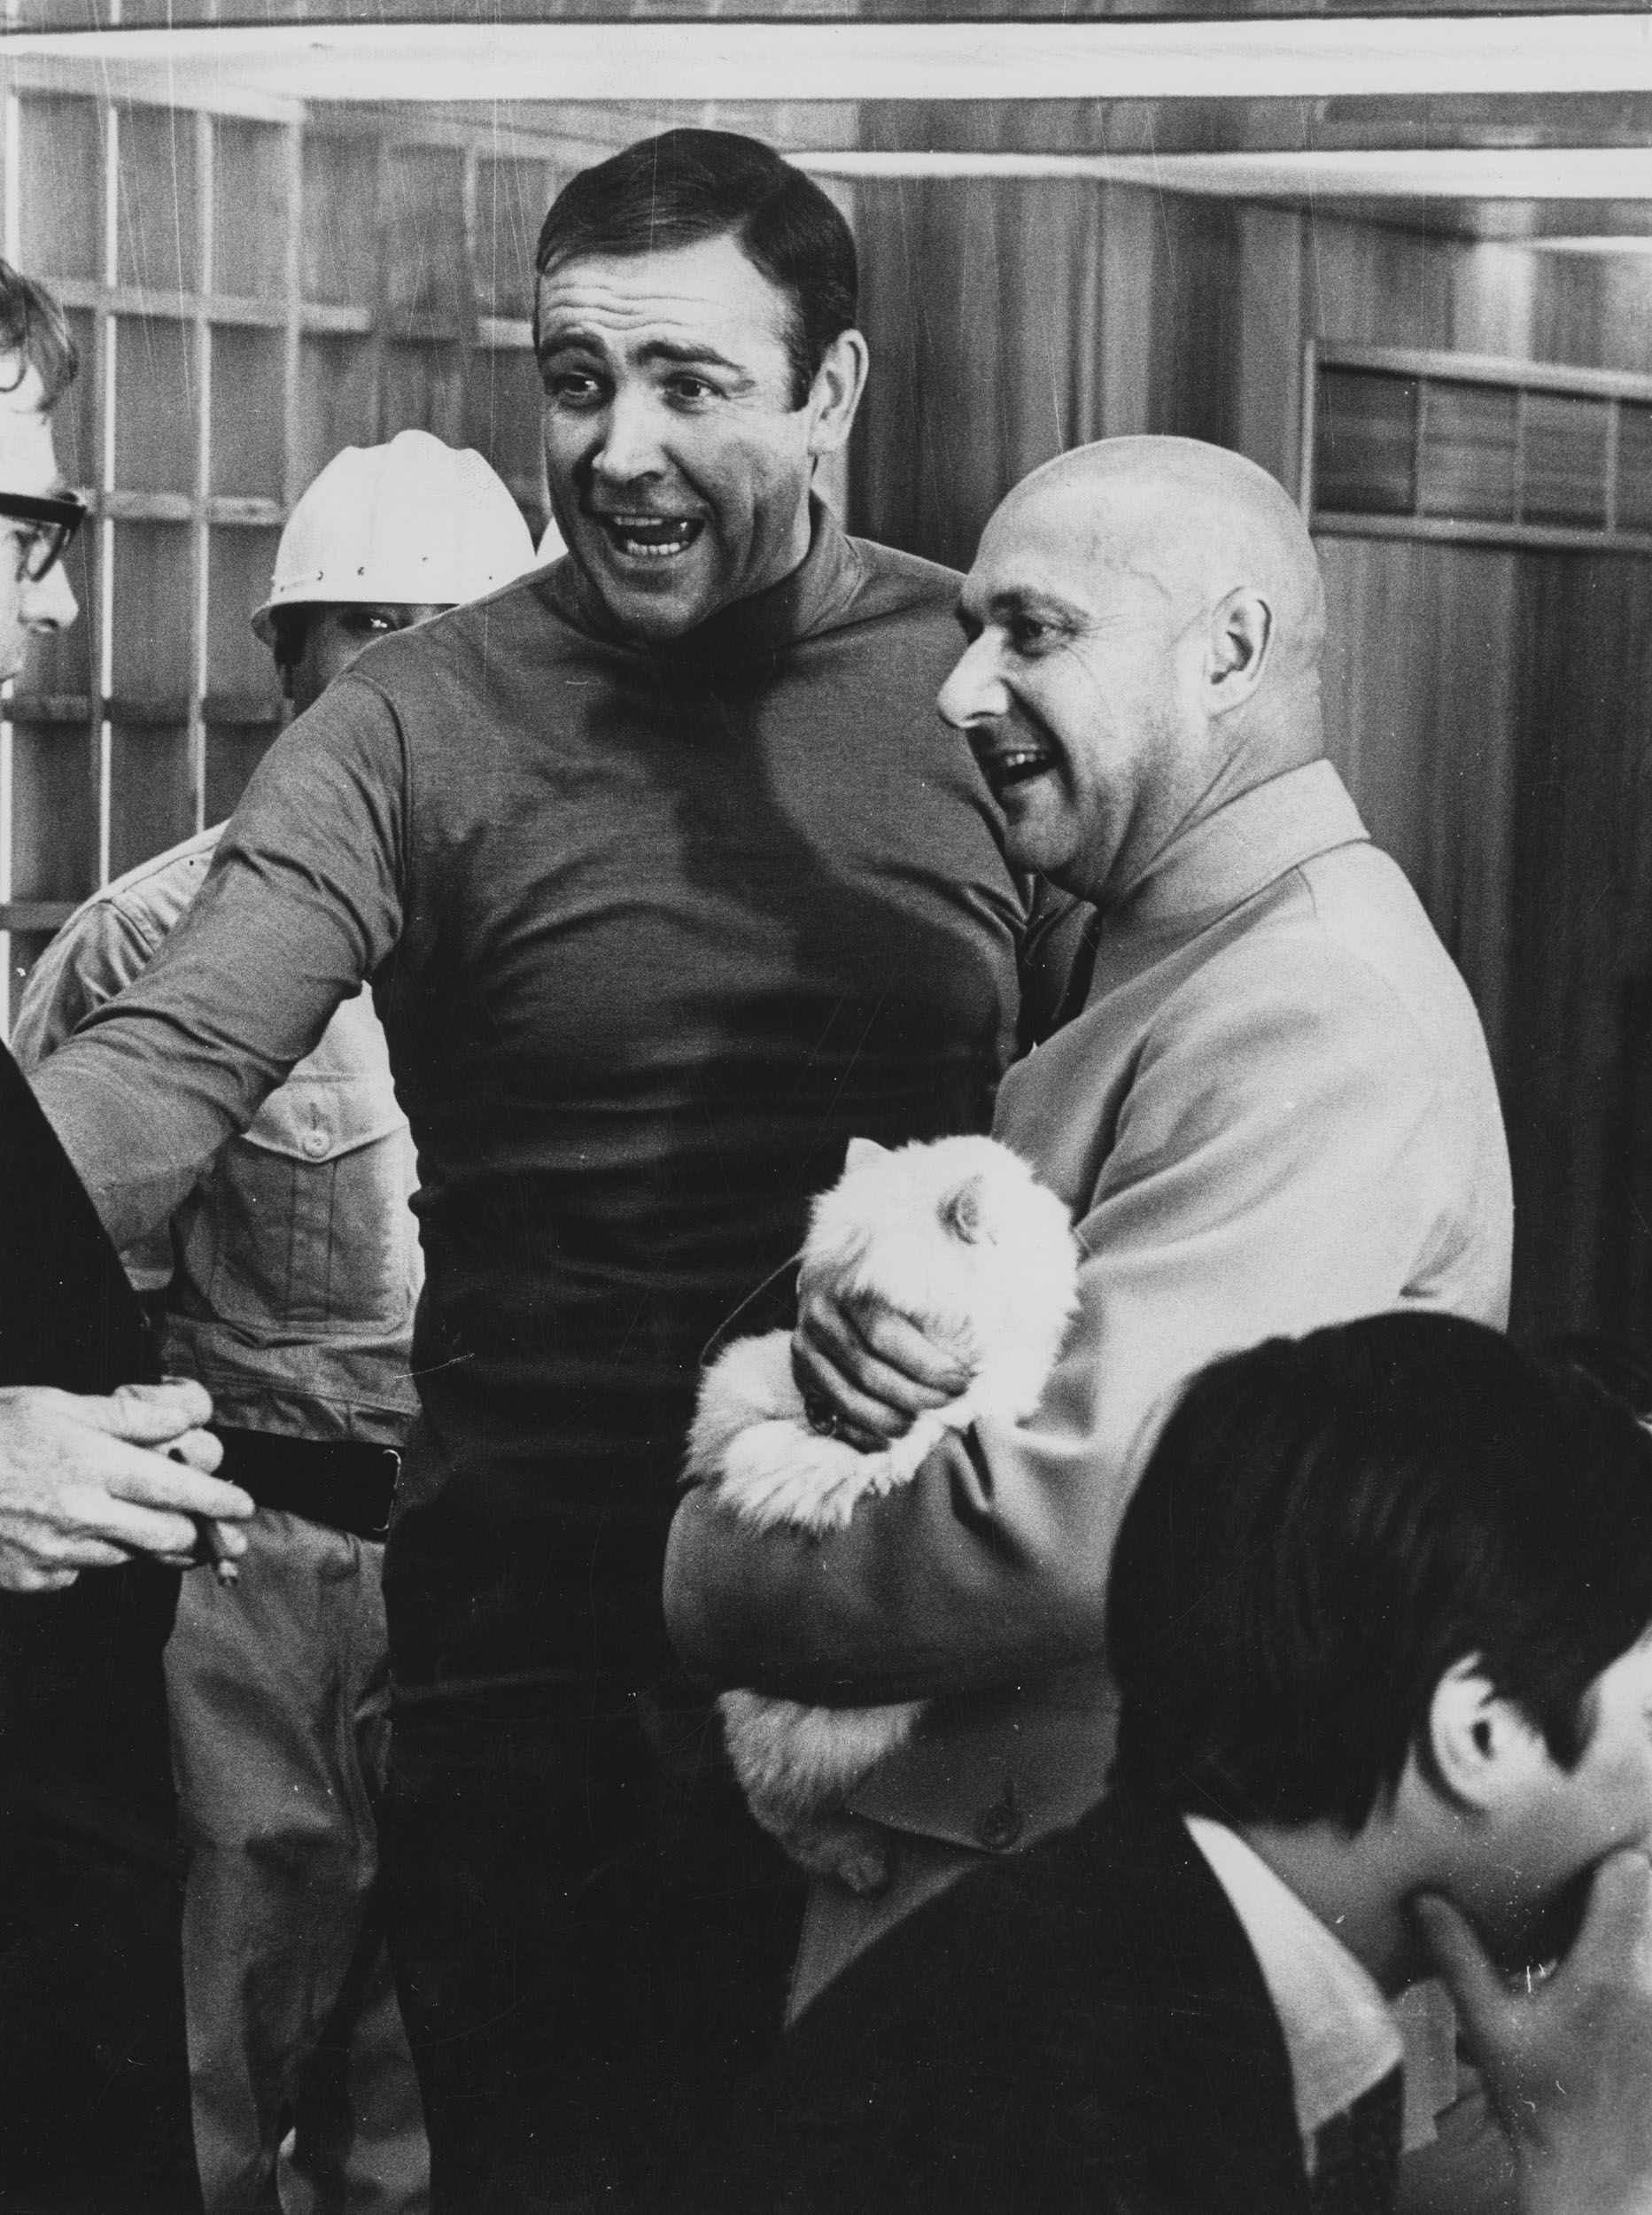 Sean Connery and Donald Pleasance (in costume as Blofeld holding a cat) chatting in between scenes on the set of You Only Live Twice.